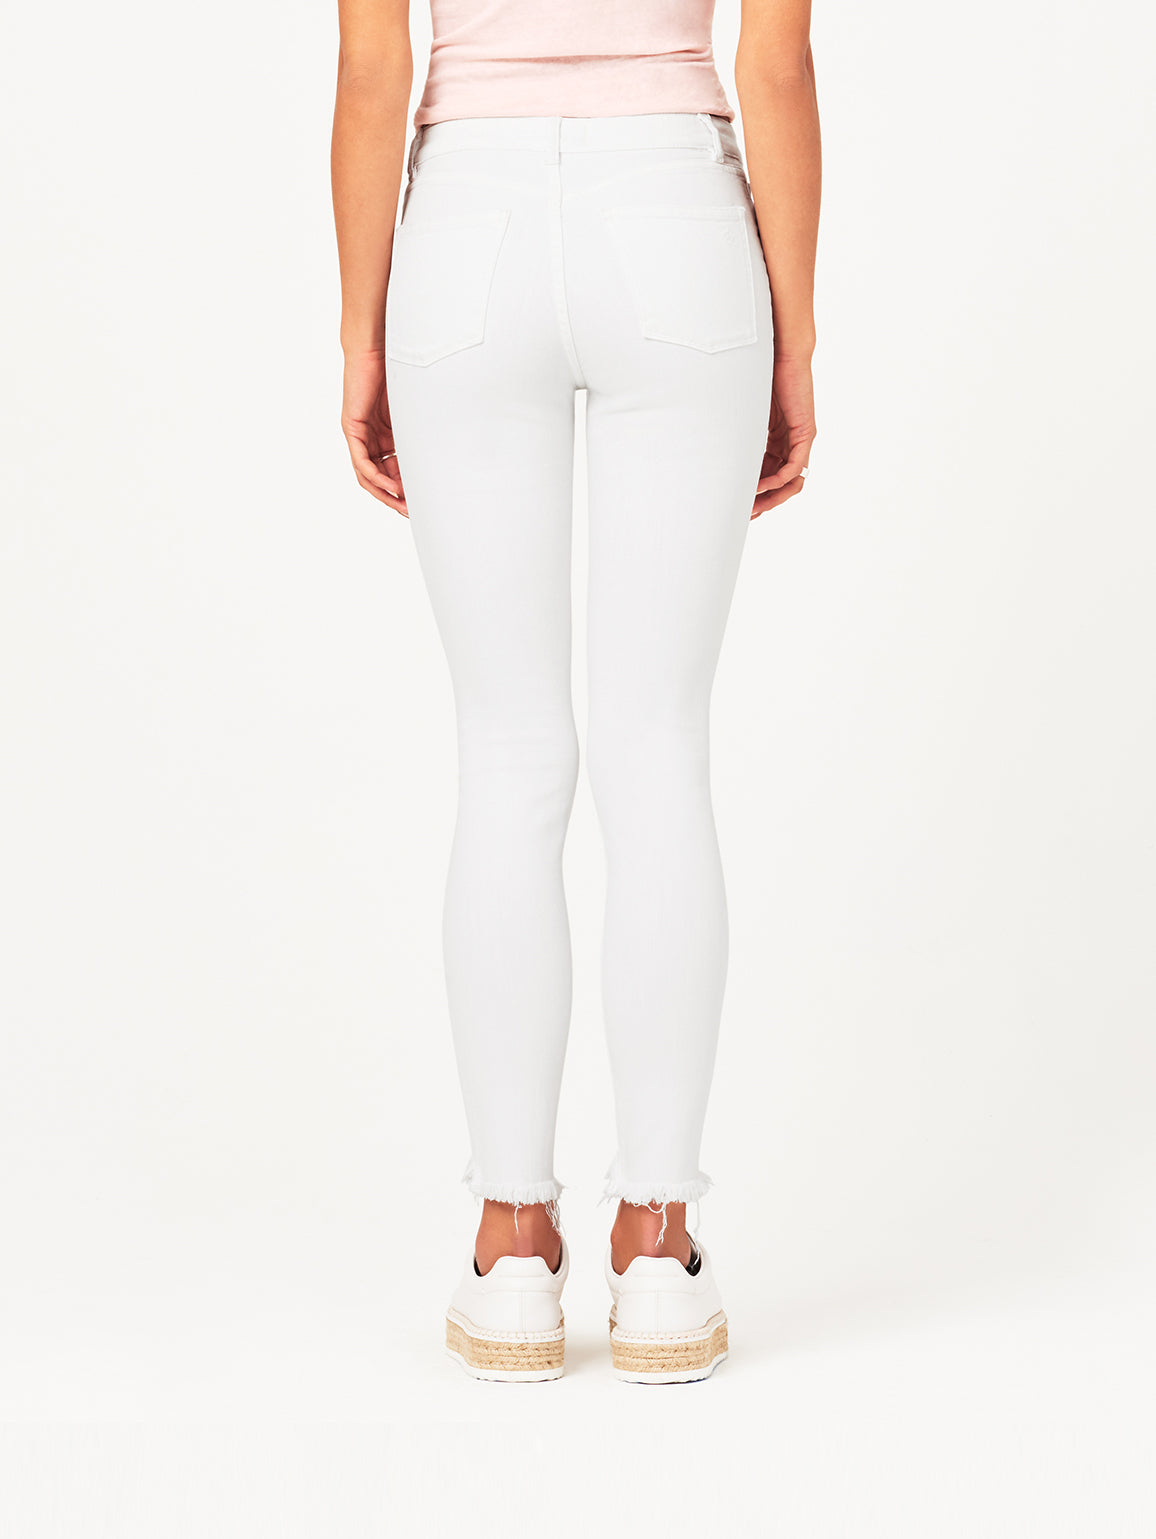 Farrow Ankle High Rise Skinny | Cape Cod DL 1961 Denim